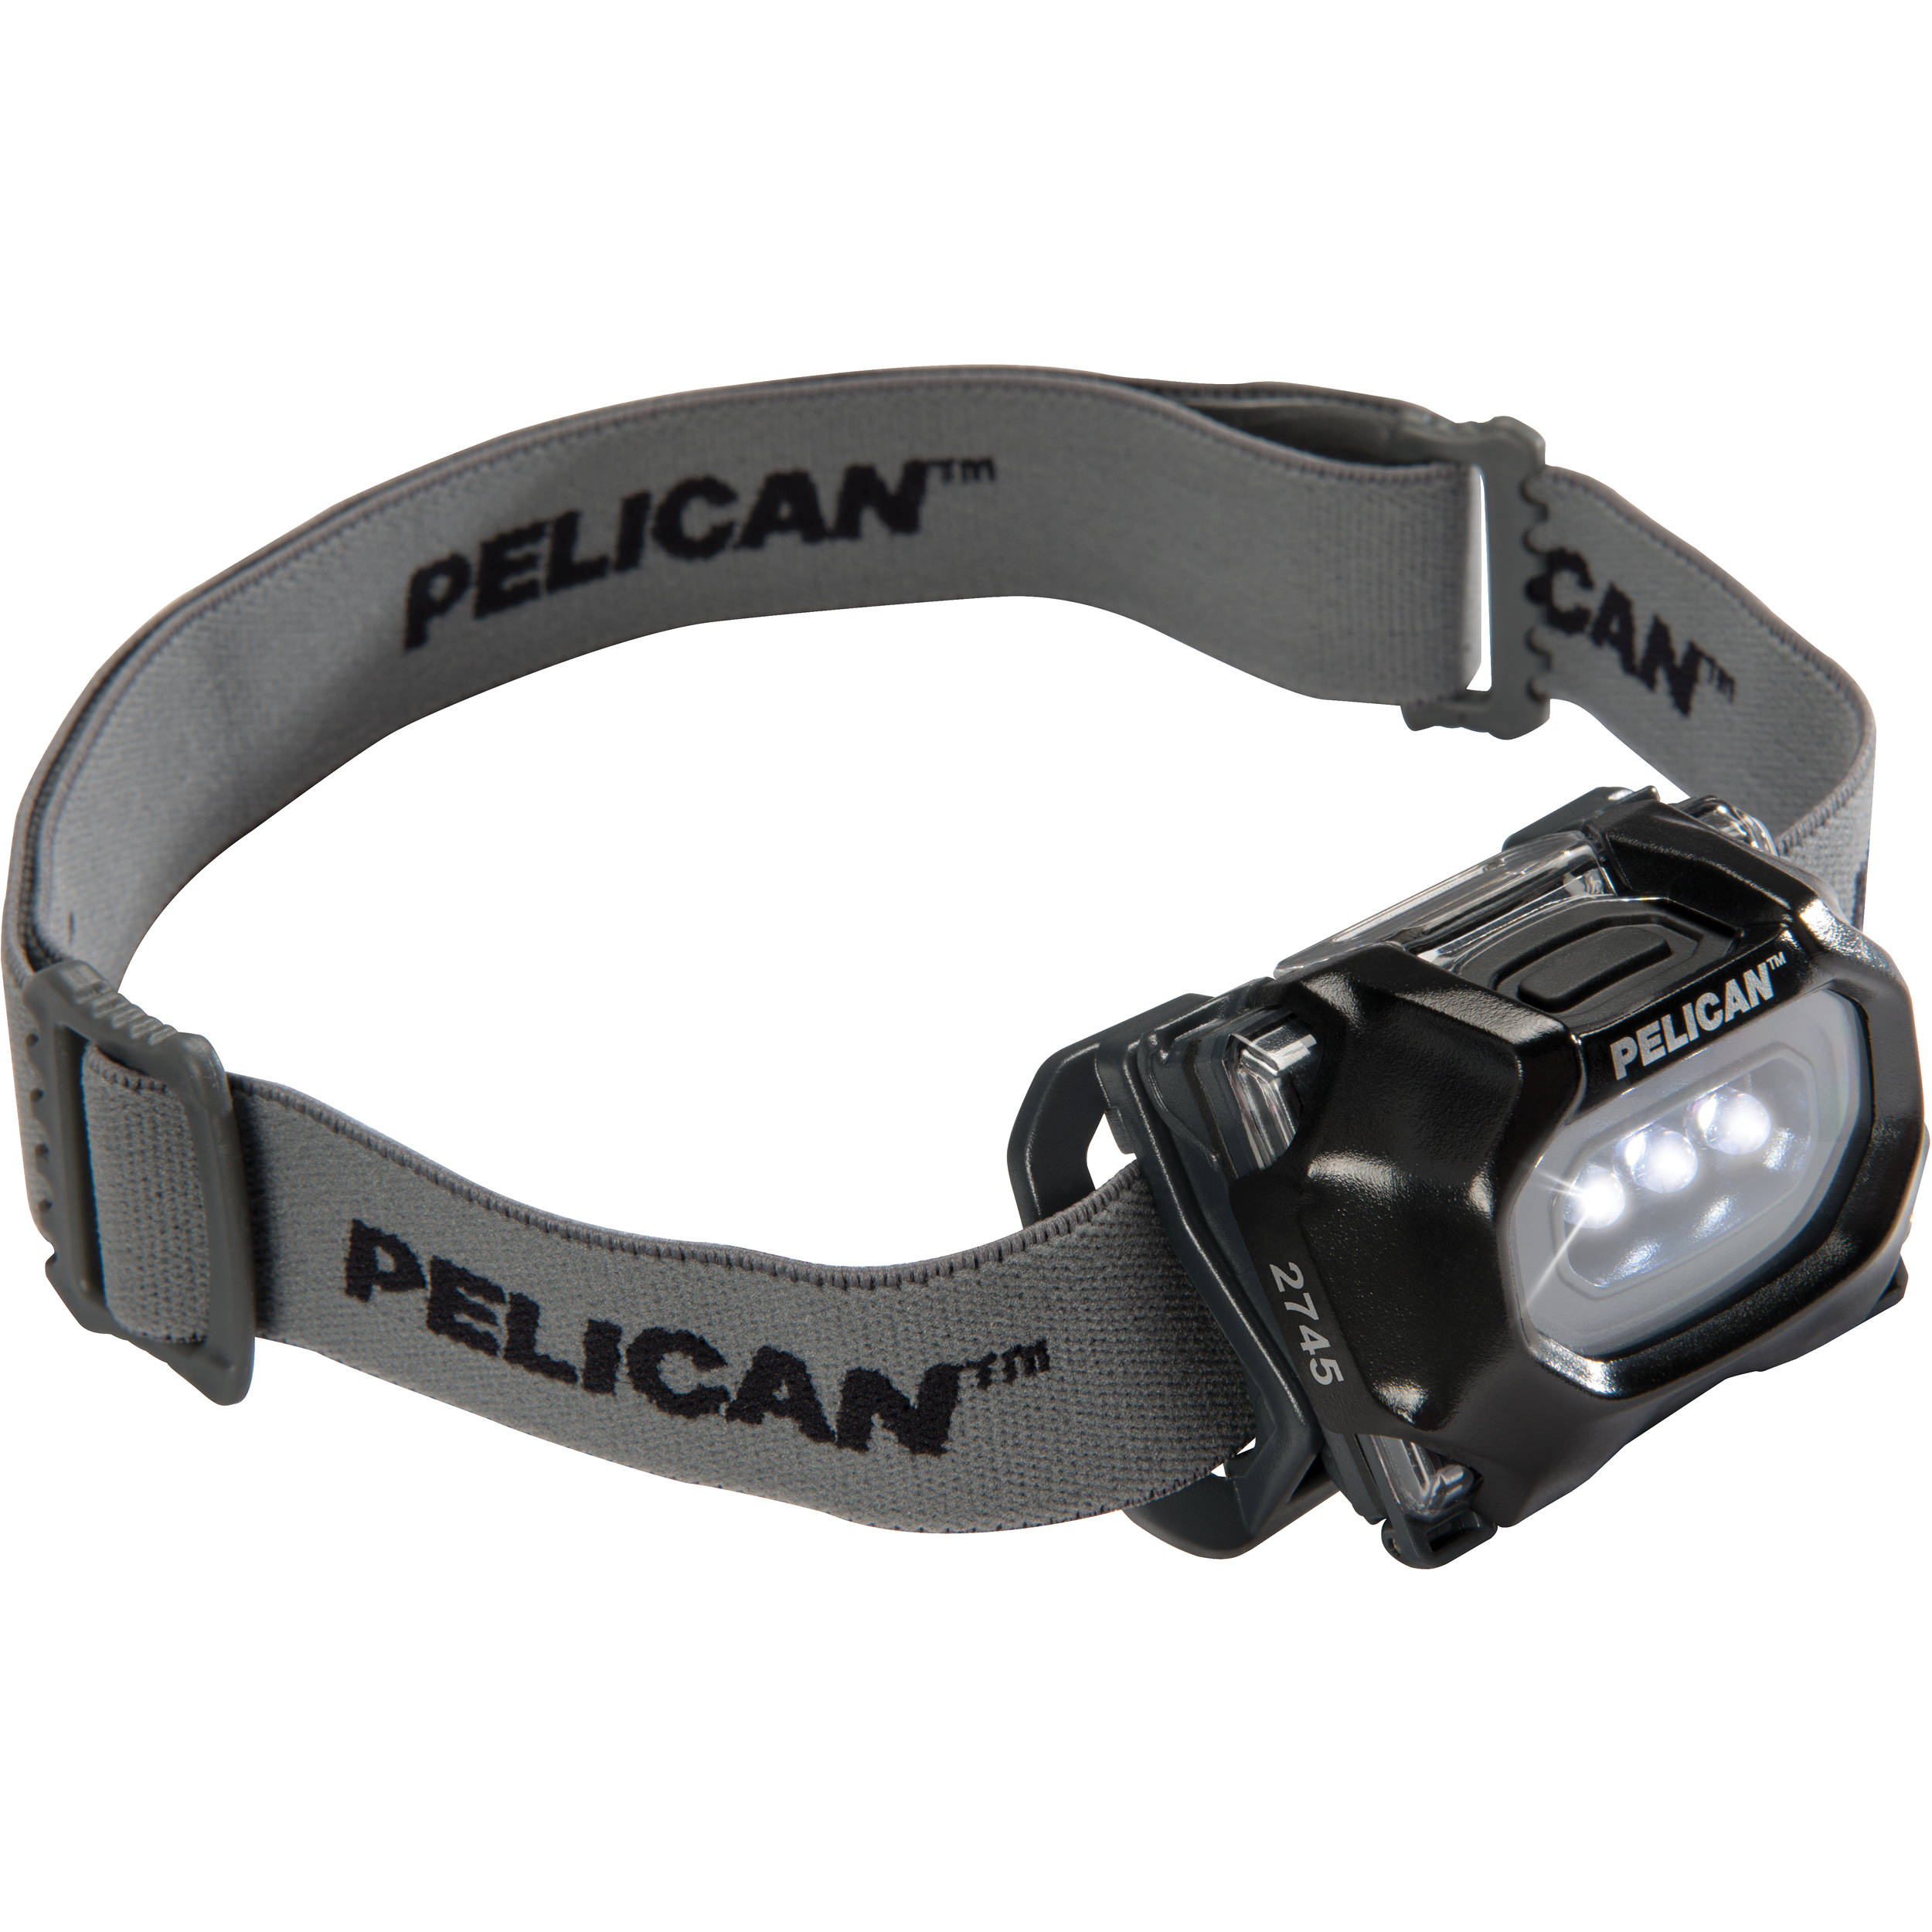 Pelican 2745 LED Headlight (Black)